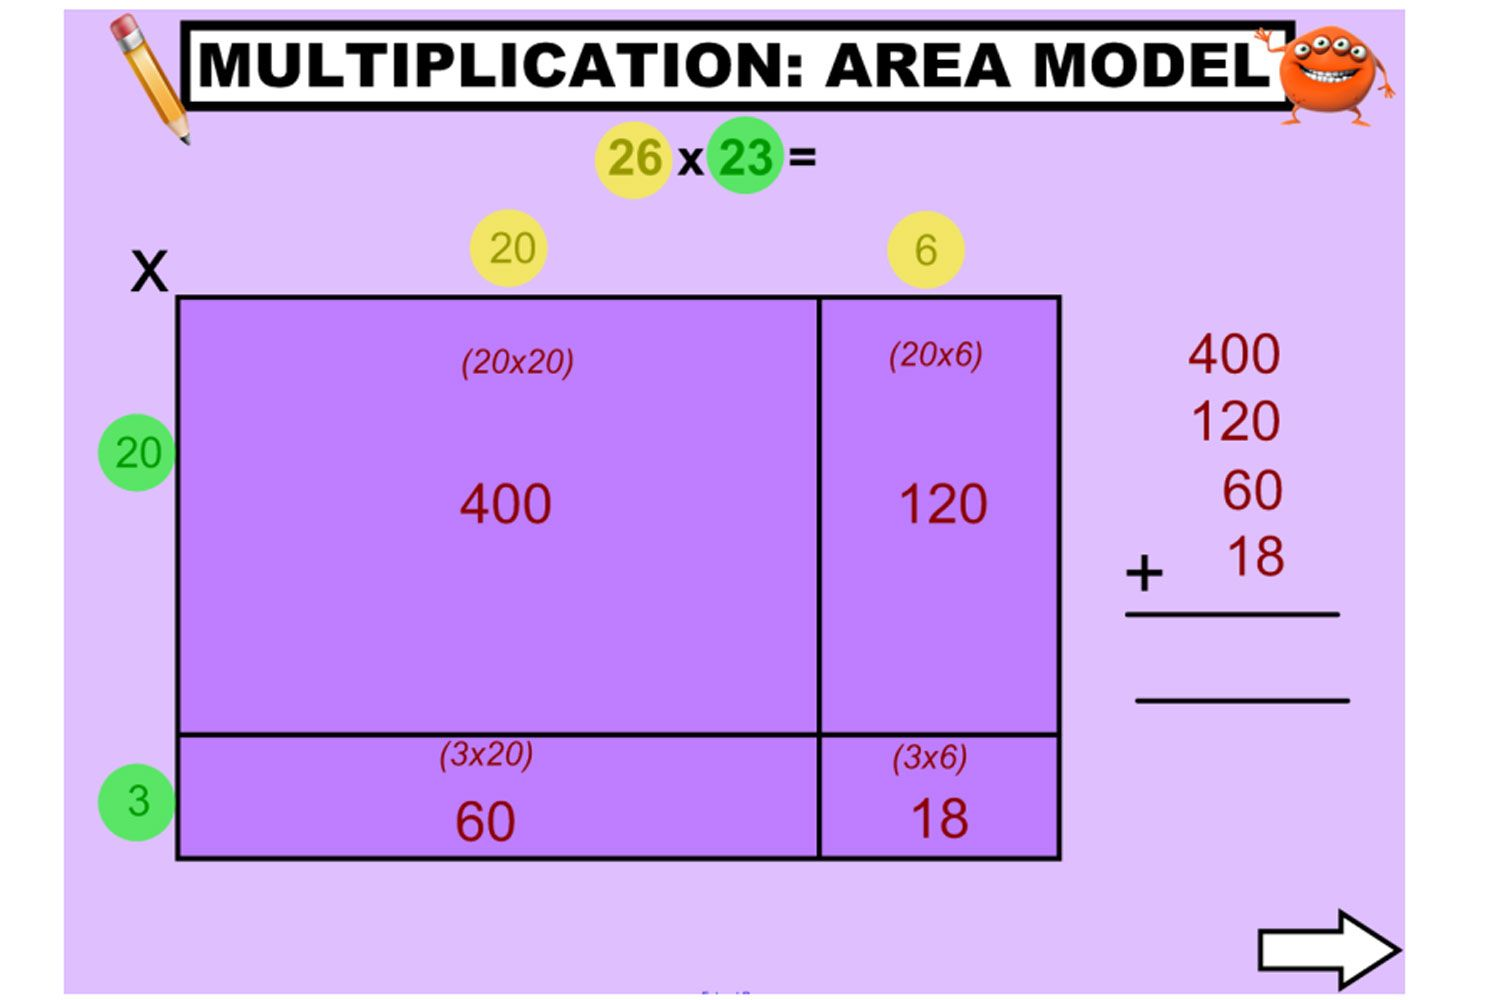 Explore The Area Model For Multiplying Large Numbers A